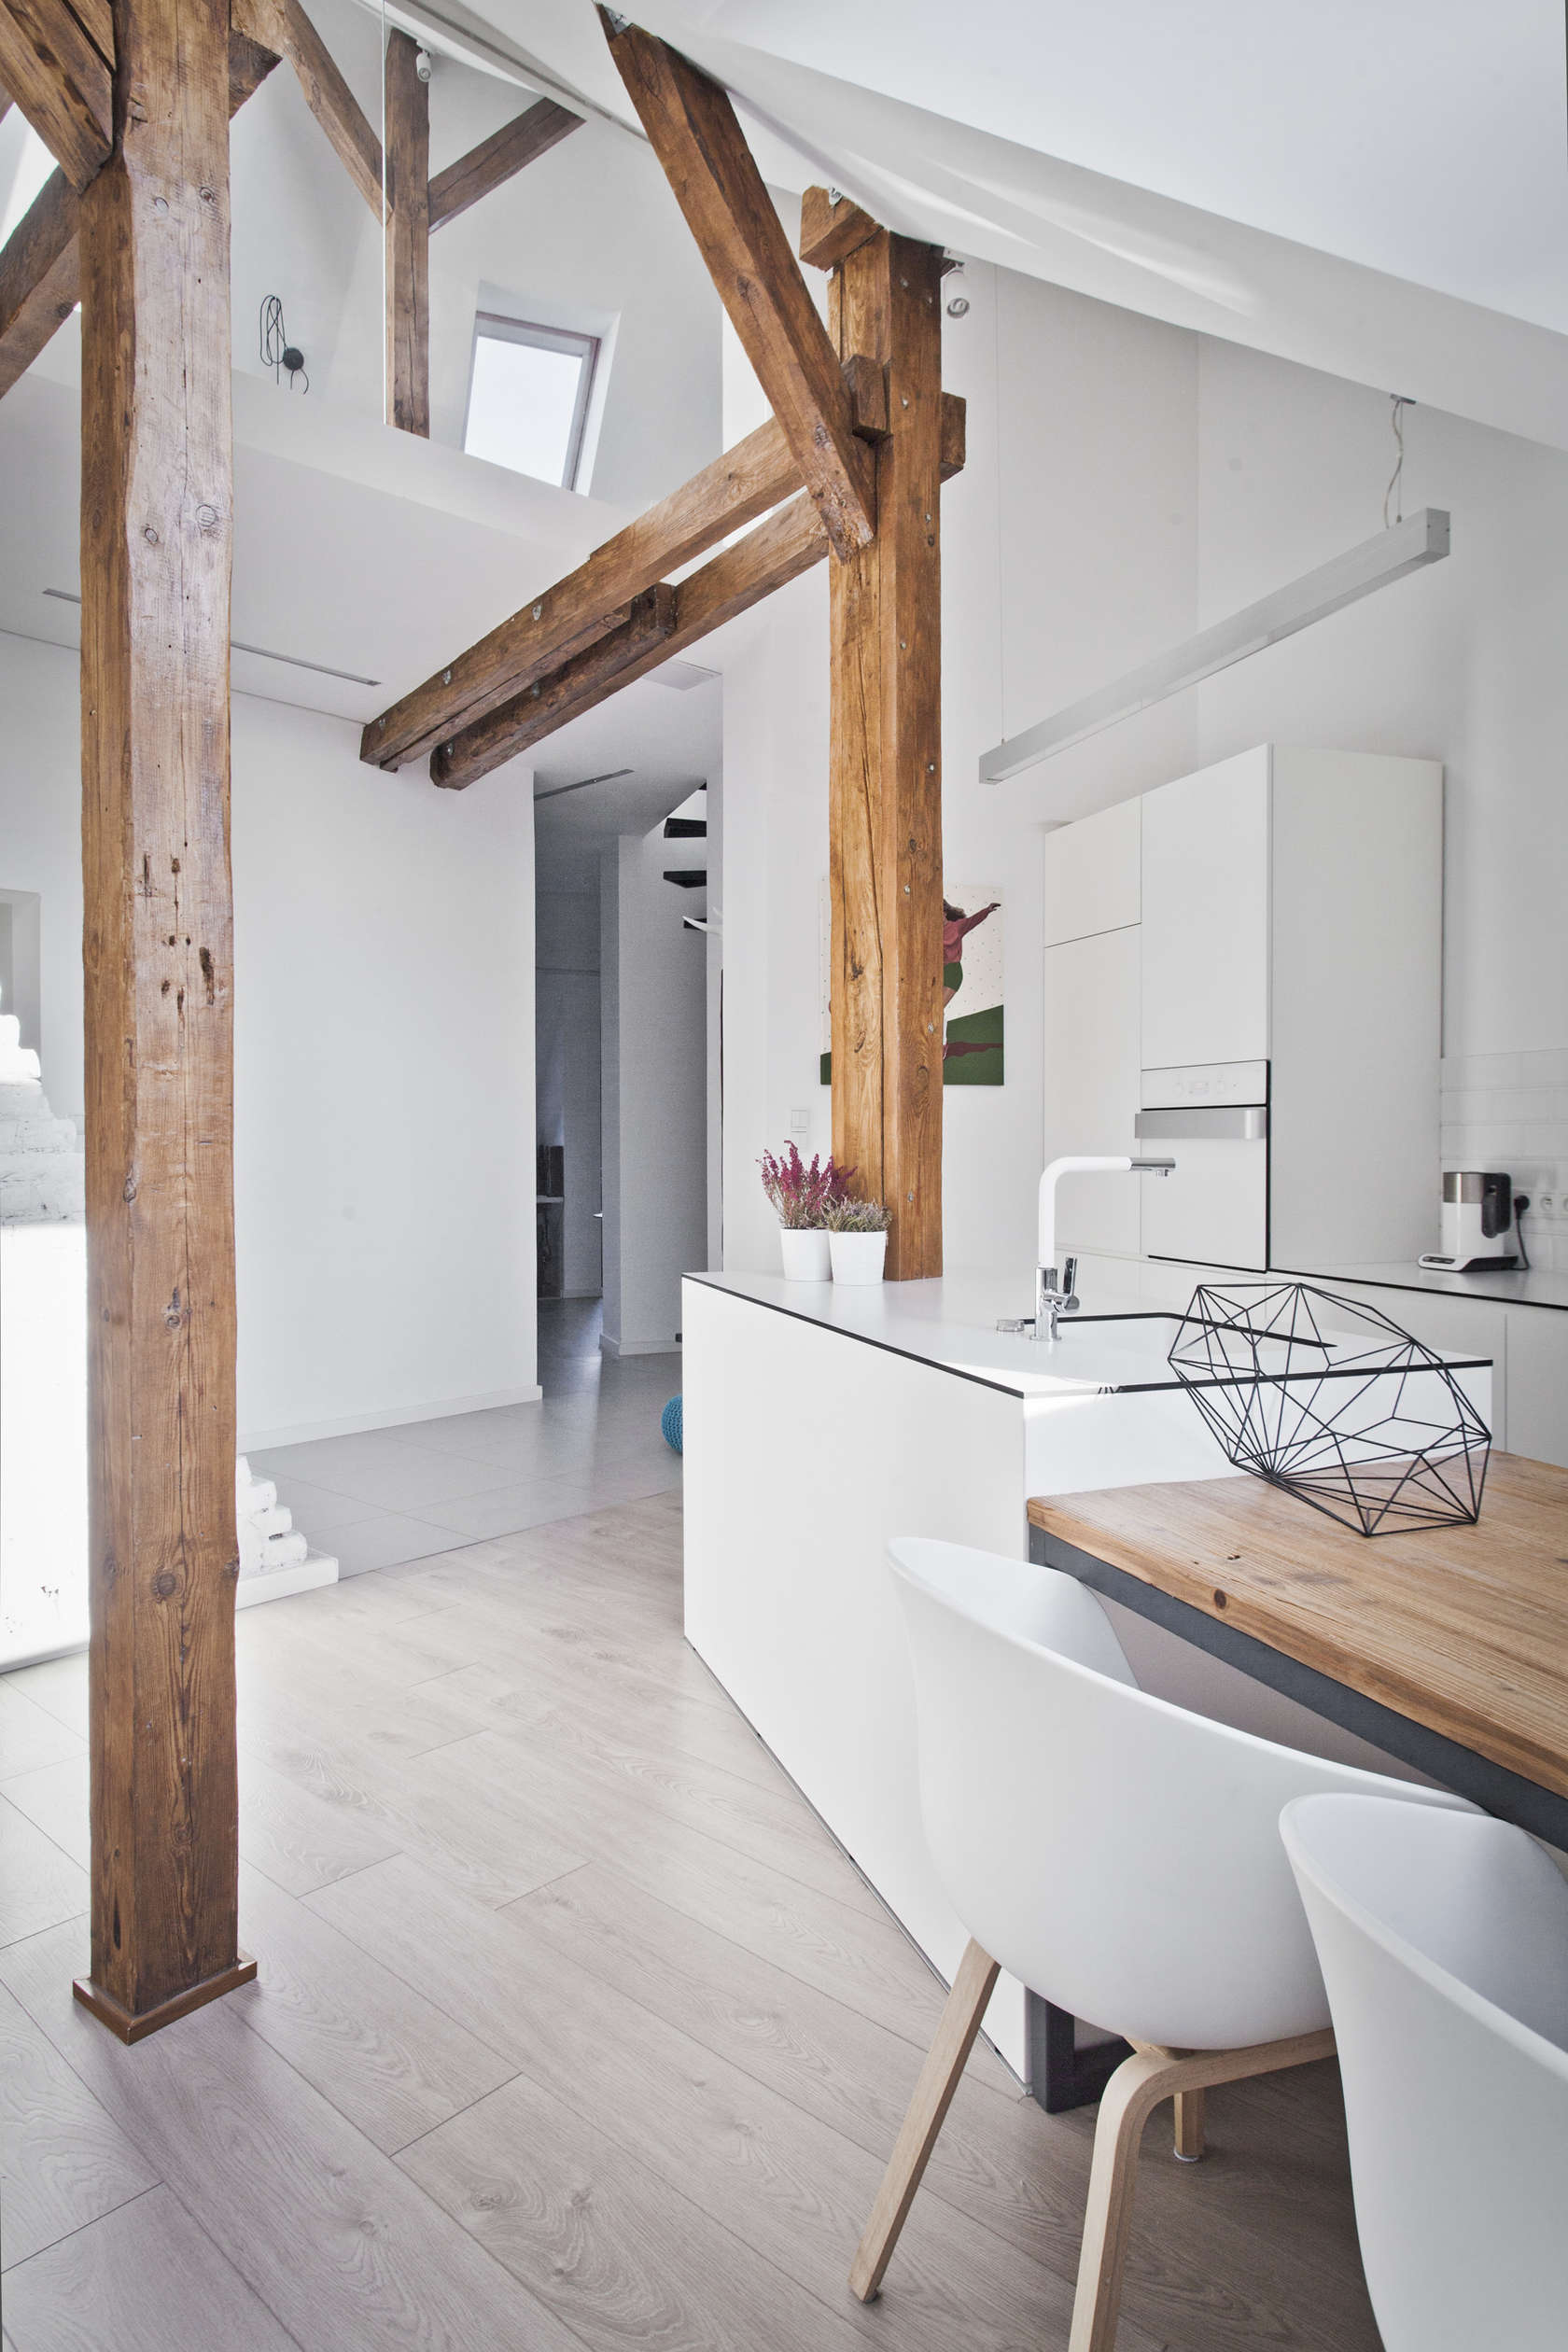 Natural Wood Beams - An old attic is transformed into a gorgeous apartment